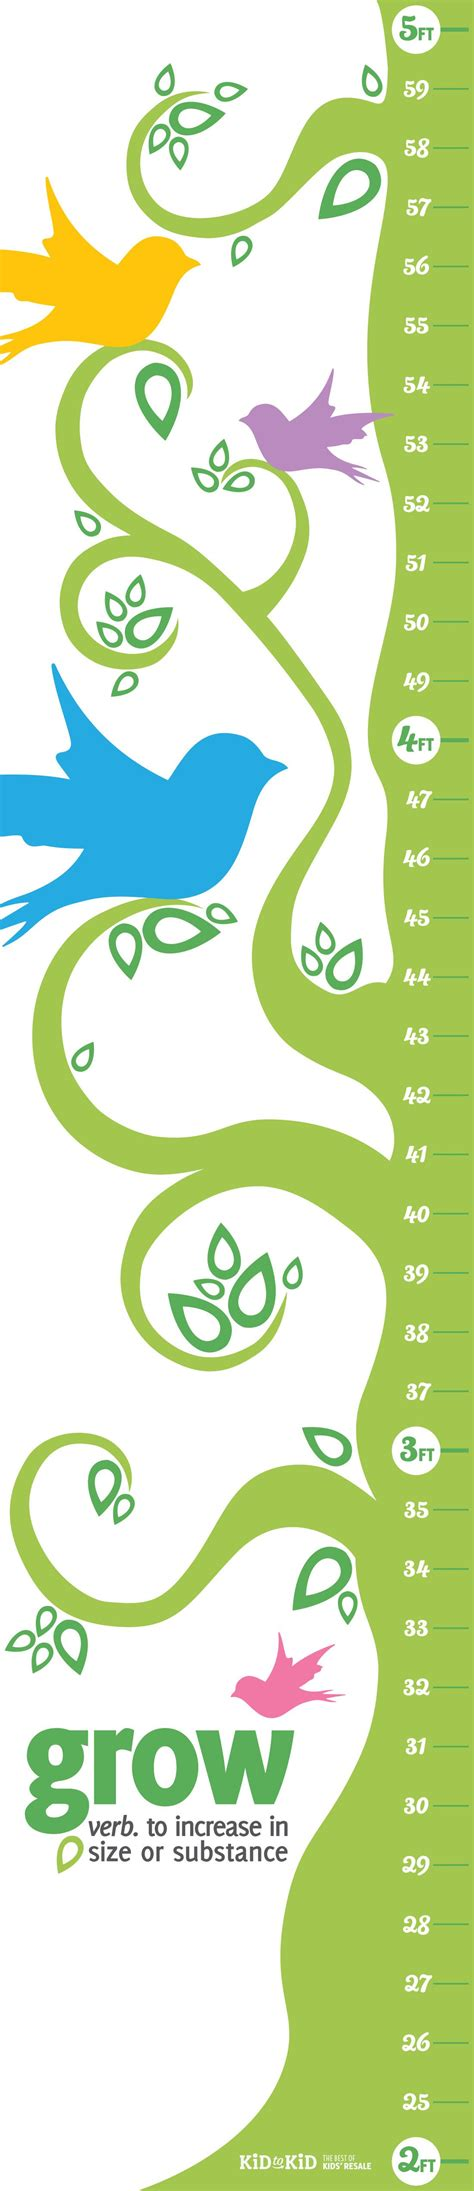 printable owl growth chart free printable growth chart can print in sections or take